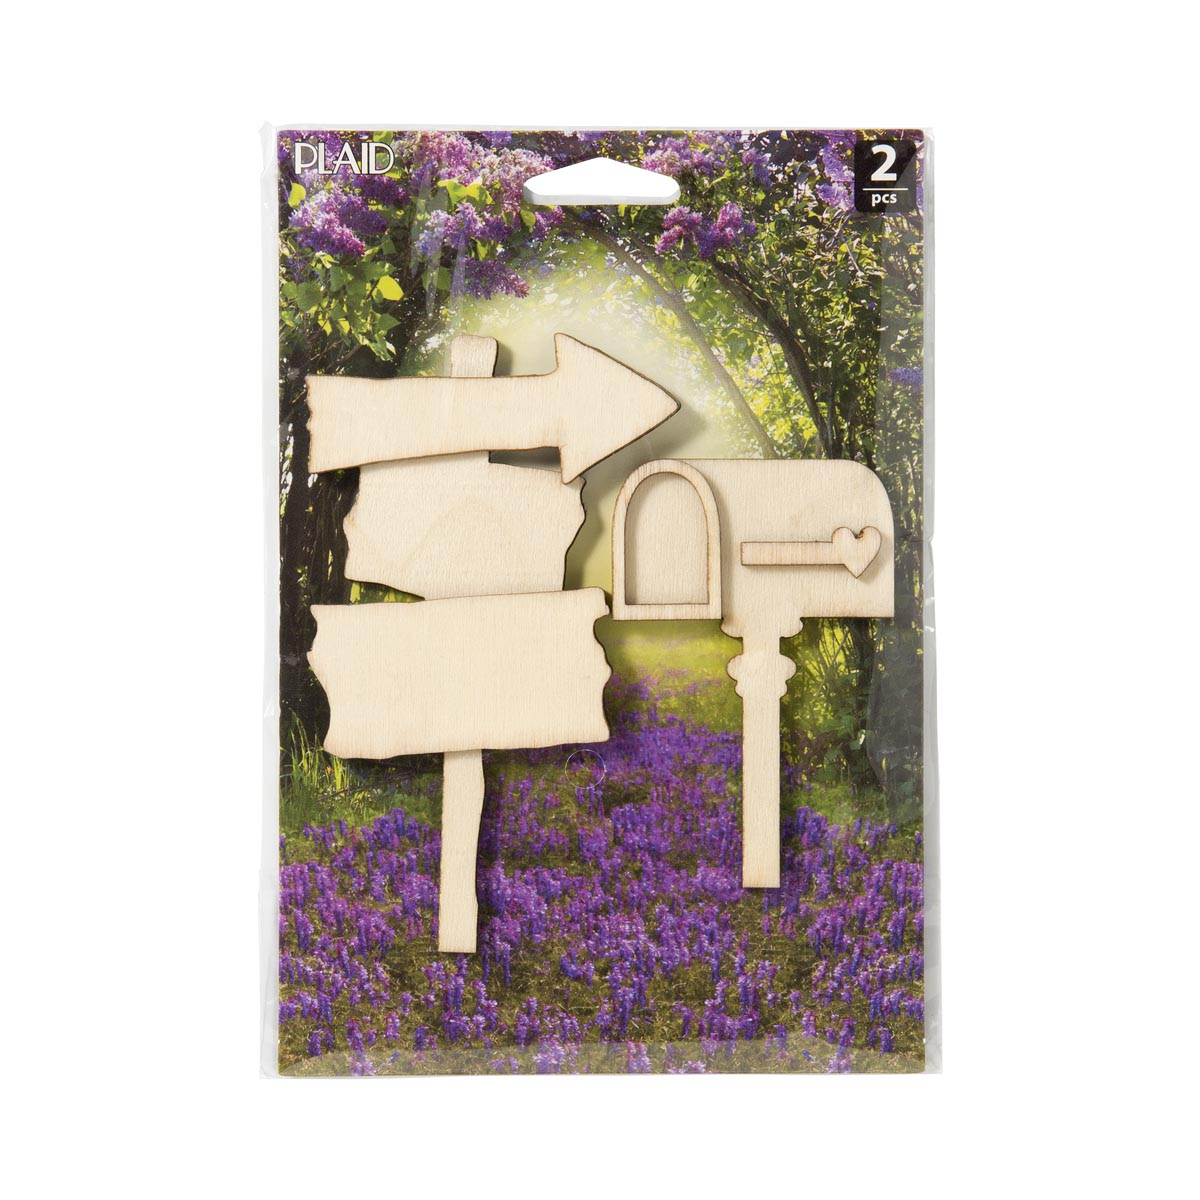 Plaid ® Wood Surfaces - Fairy Garden - Mailbox and Sign 2 pc.